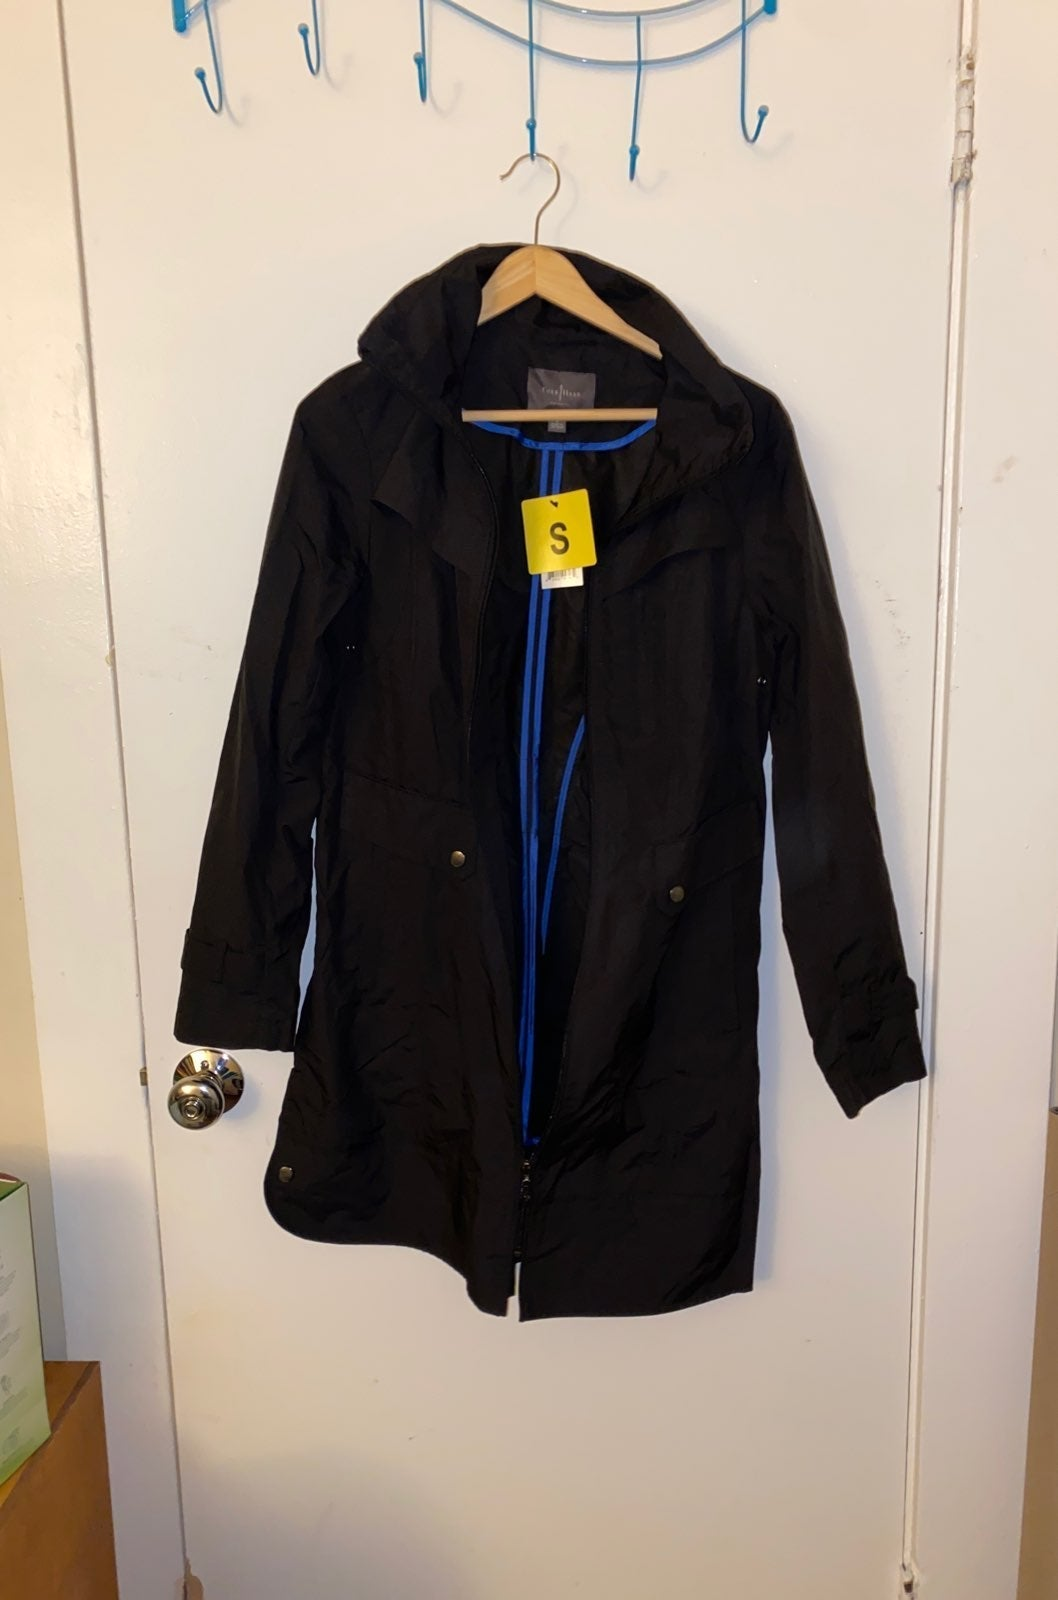 Nwt Cole haan womens hooded trench coat